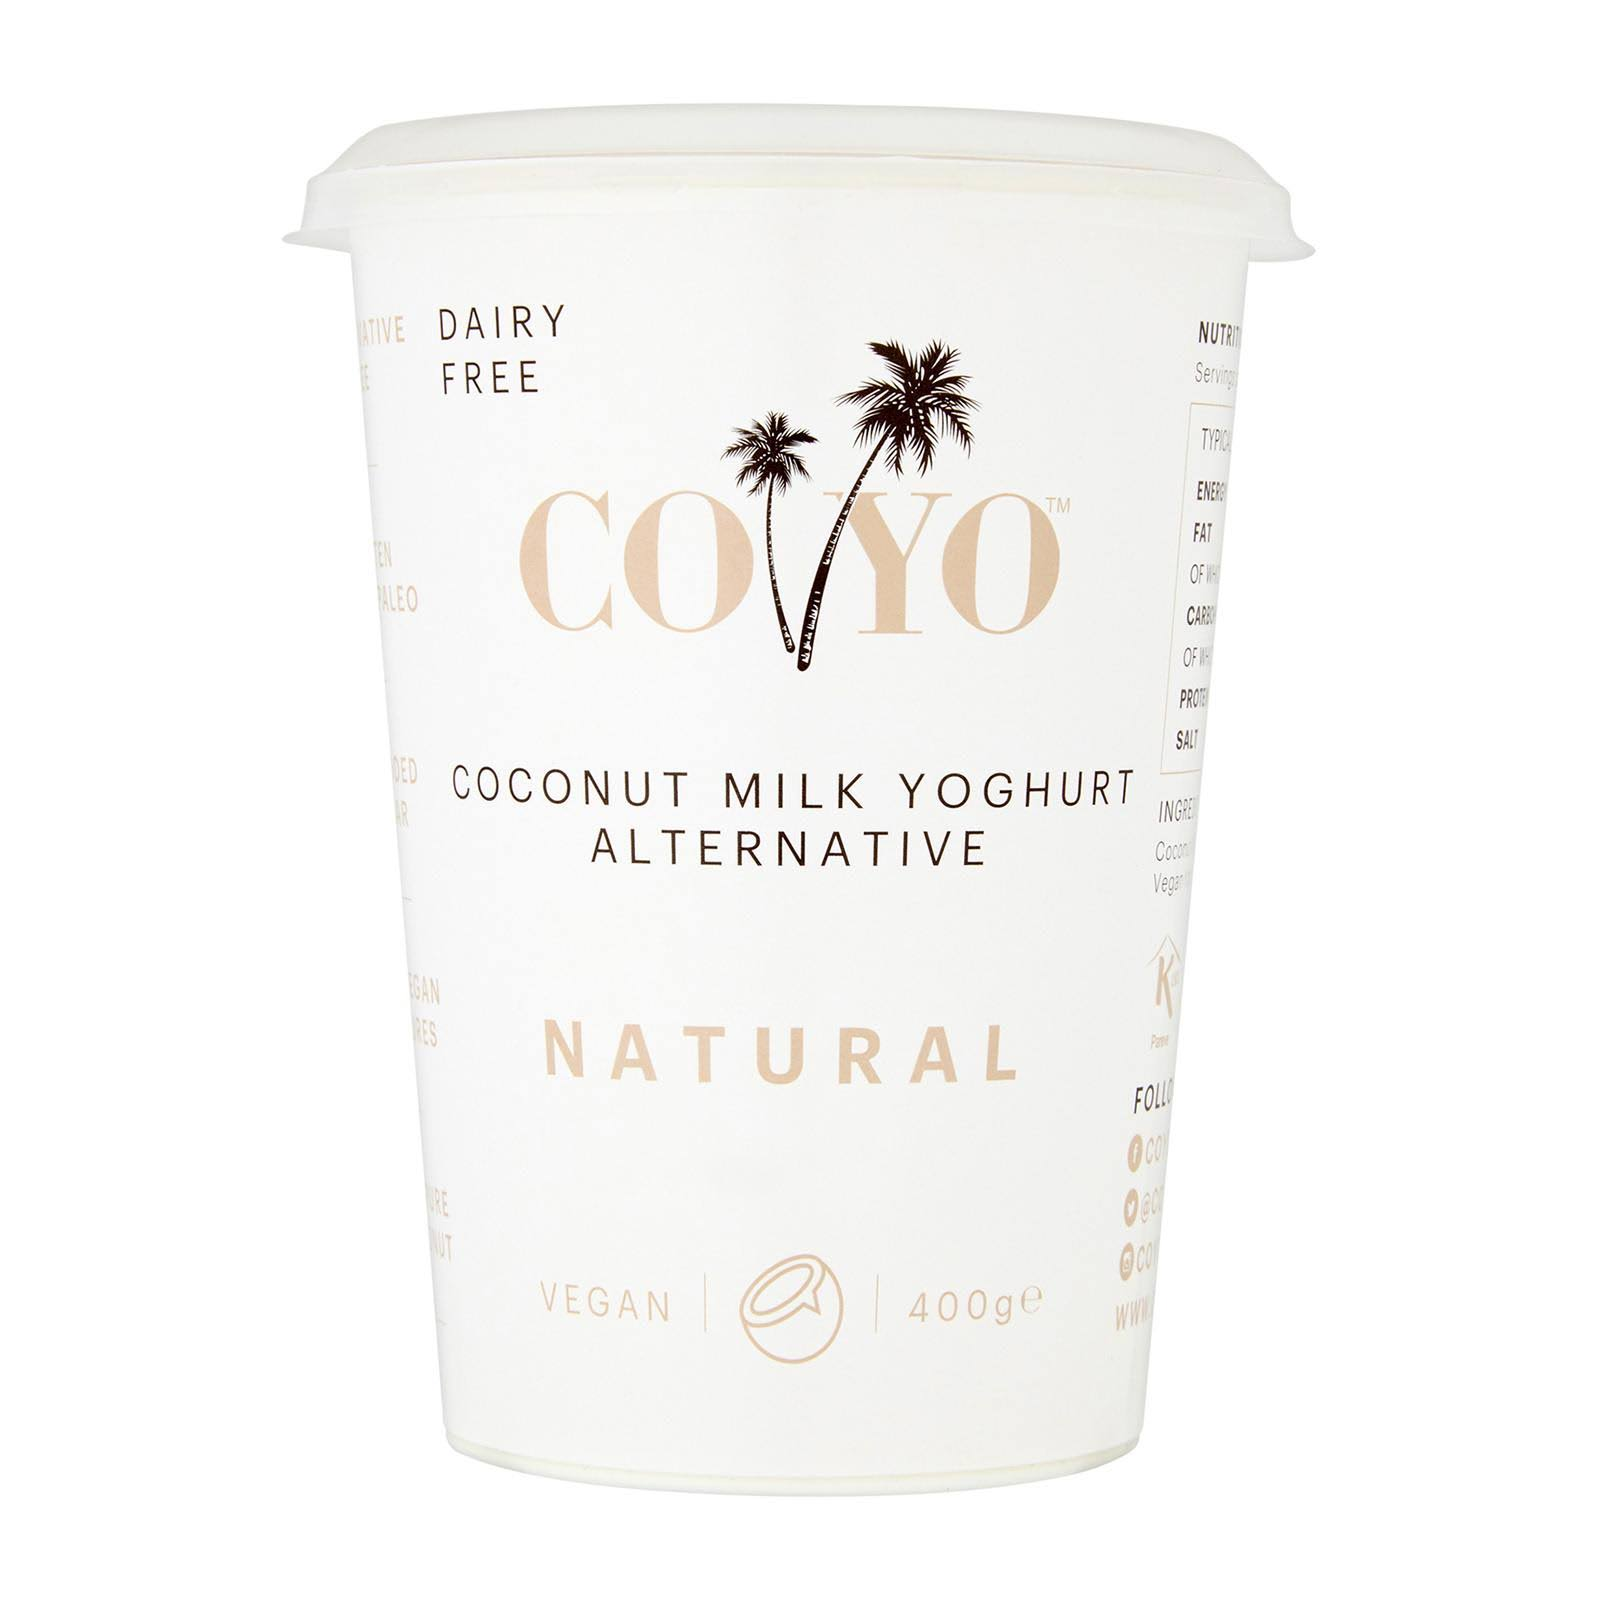 Co Yo Organic Natural Coconut Milk Yoghurt - 400g